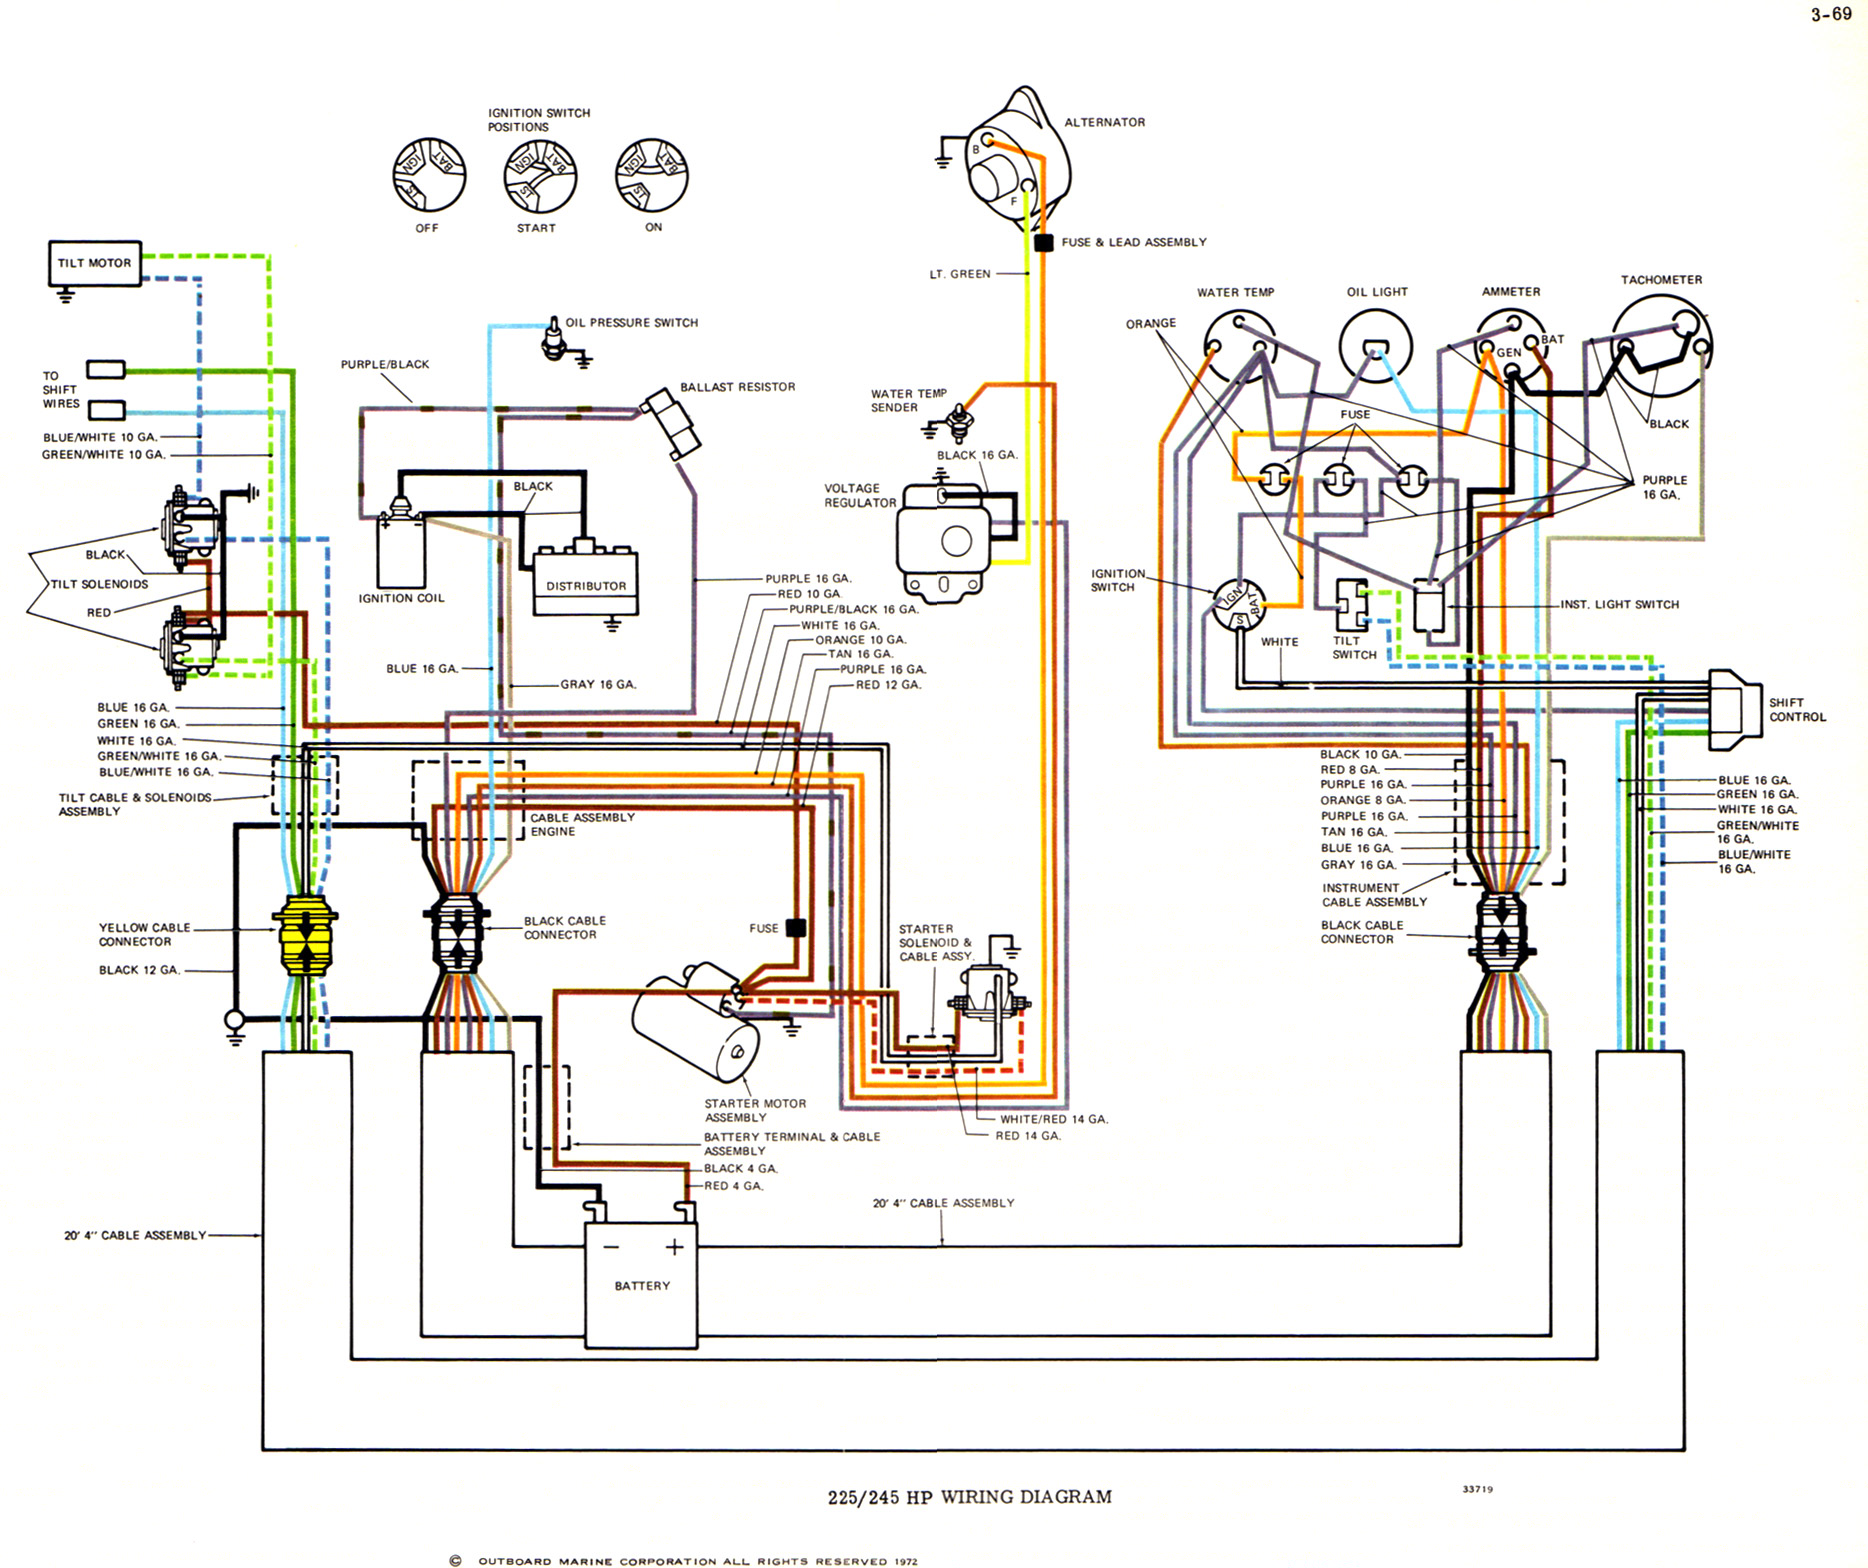 ignition wiring diagram johnson outboard schematics and wiring o tan i have a johnson outboard model 35el76g 35 hp motor mercury outboard ignition wiring diagram wedocable